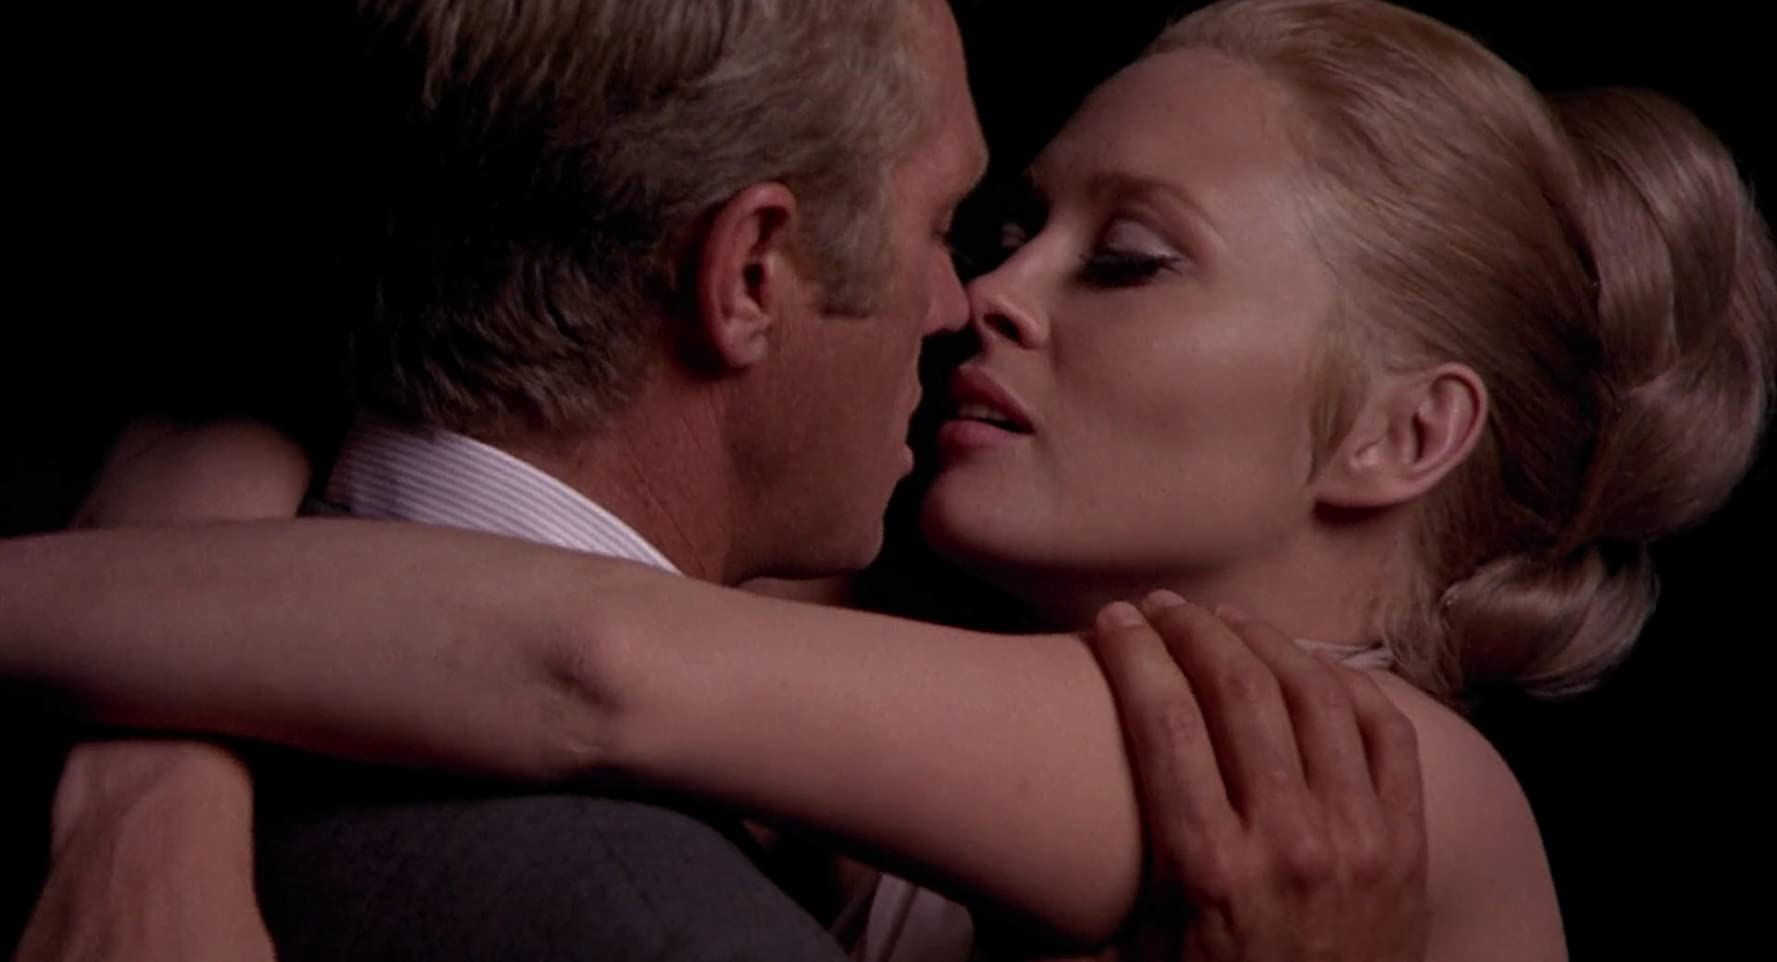 Steve McQueen and Faye Dunaway in The Thomas Crown Affair (1968)